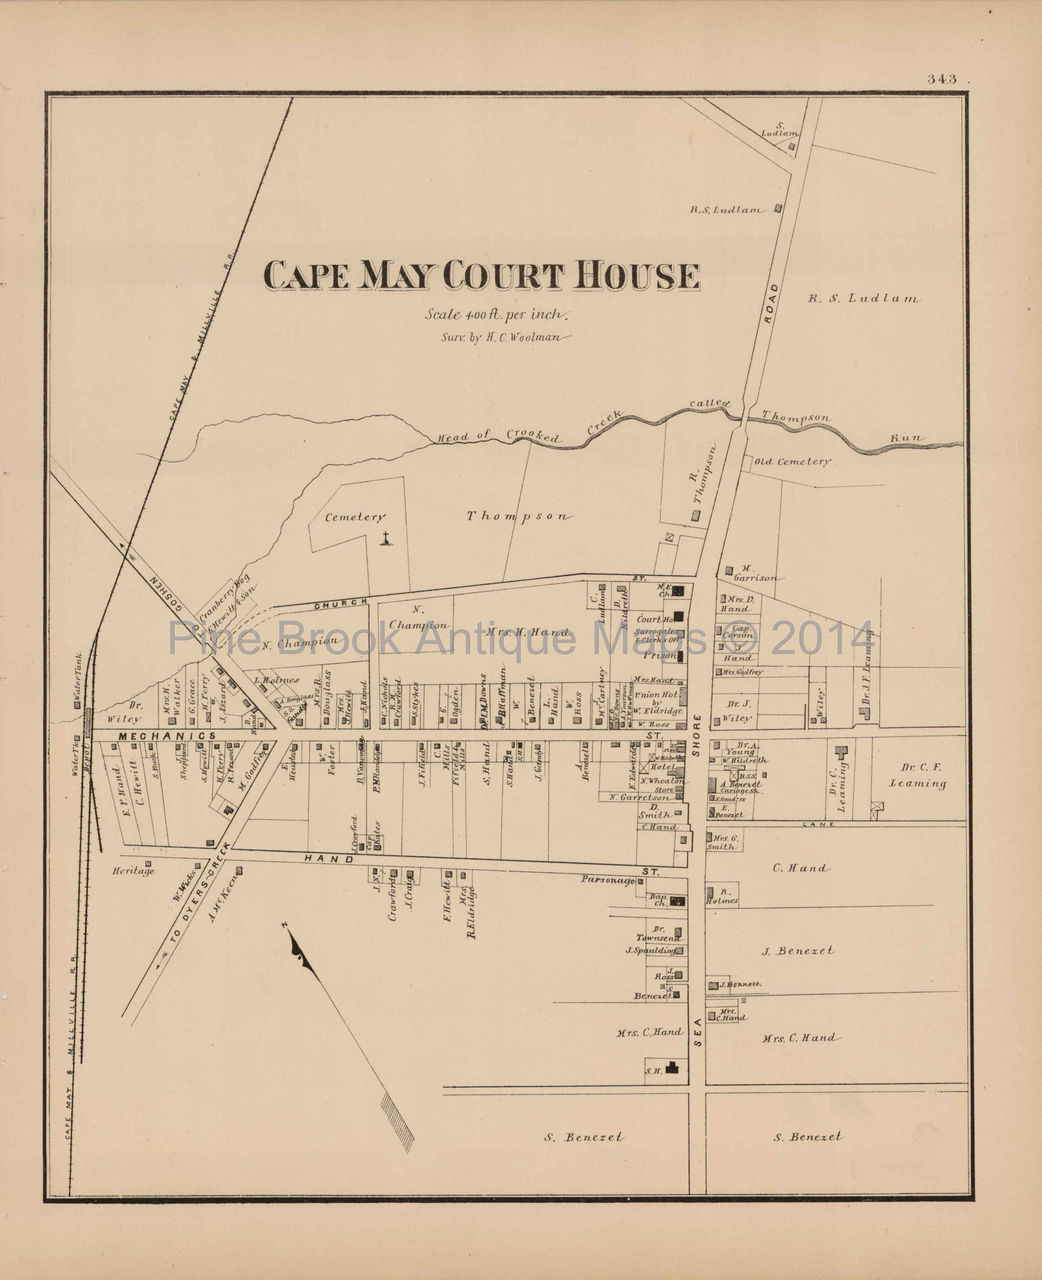 Cape May Court House New Jersey Antique Map Woolman & Rose 1878 Cape May New Jersey Map on rehoboth beach, jersey shore, long branch, ocean county, cape may lighthouse, town of cape may map, mercer county, leonia new jersey map, cape may beach map, atlantic city, cape may tourist map, cape may county, cape may county herald, town bank cape may map, cape may downtown map, cape may city map, southern new jersey map, stone harbor, sea isle city, delaware bay, south jersey, asbury park, rio grande, belmar new jersey map, cape may street map, cumberland county new jersey map, cape may diamonds, cape may sound, ocean city, lawrence township new jersey map, strathmere new jersey map, allentown new jersey map, cape may national wildlife refuge map, cape may county map, cape may nj,